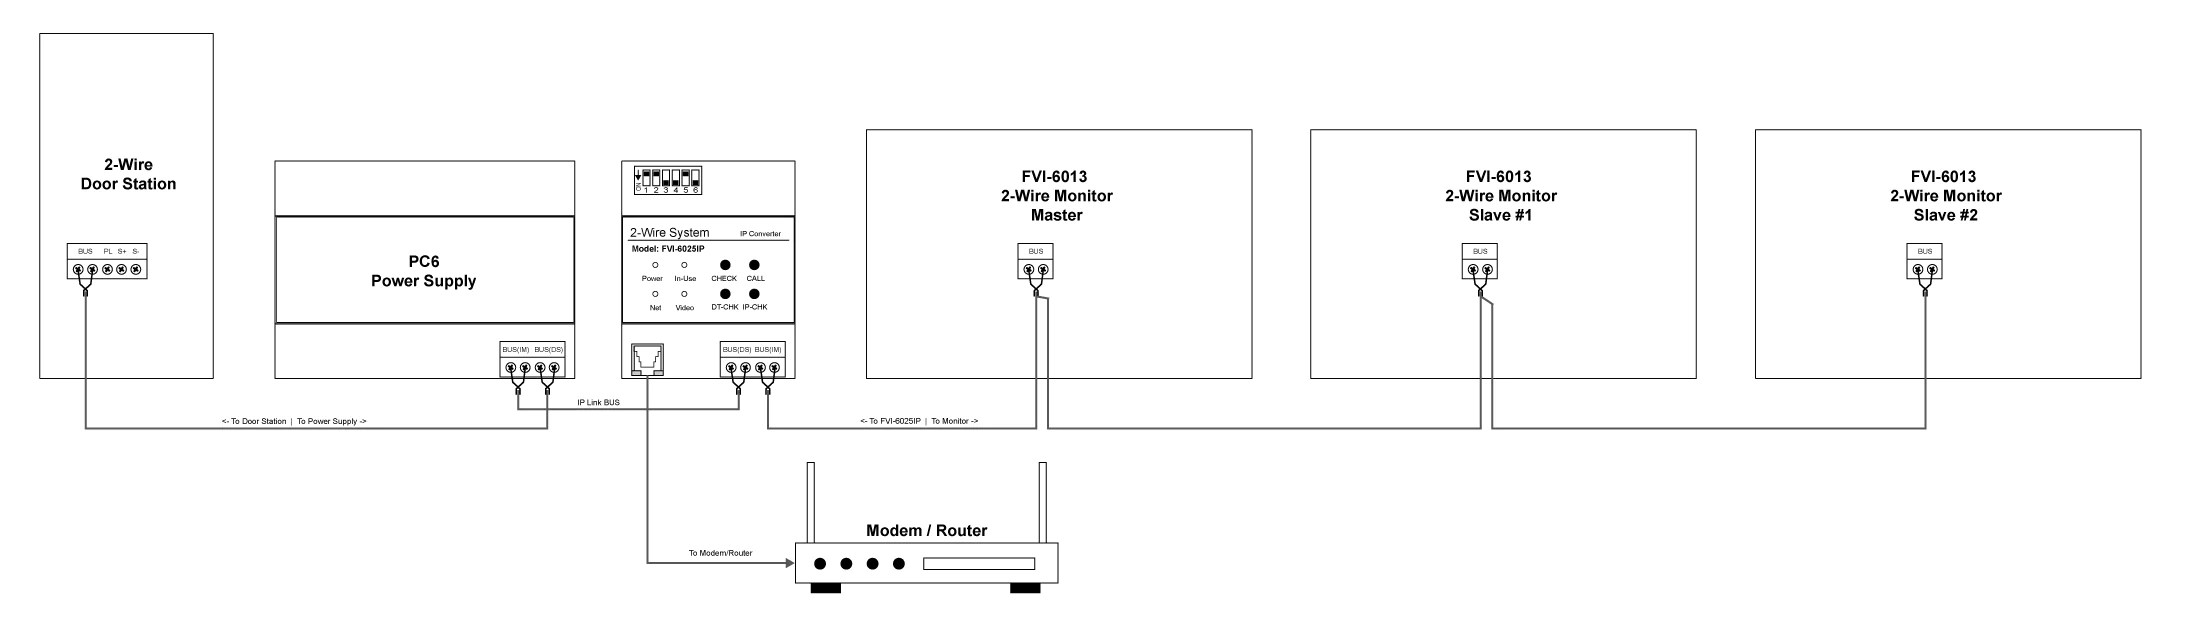 hight resolution of 2 wire app instructions u2013 fermax australiafor a multiple monitor setup without a branch controller